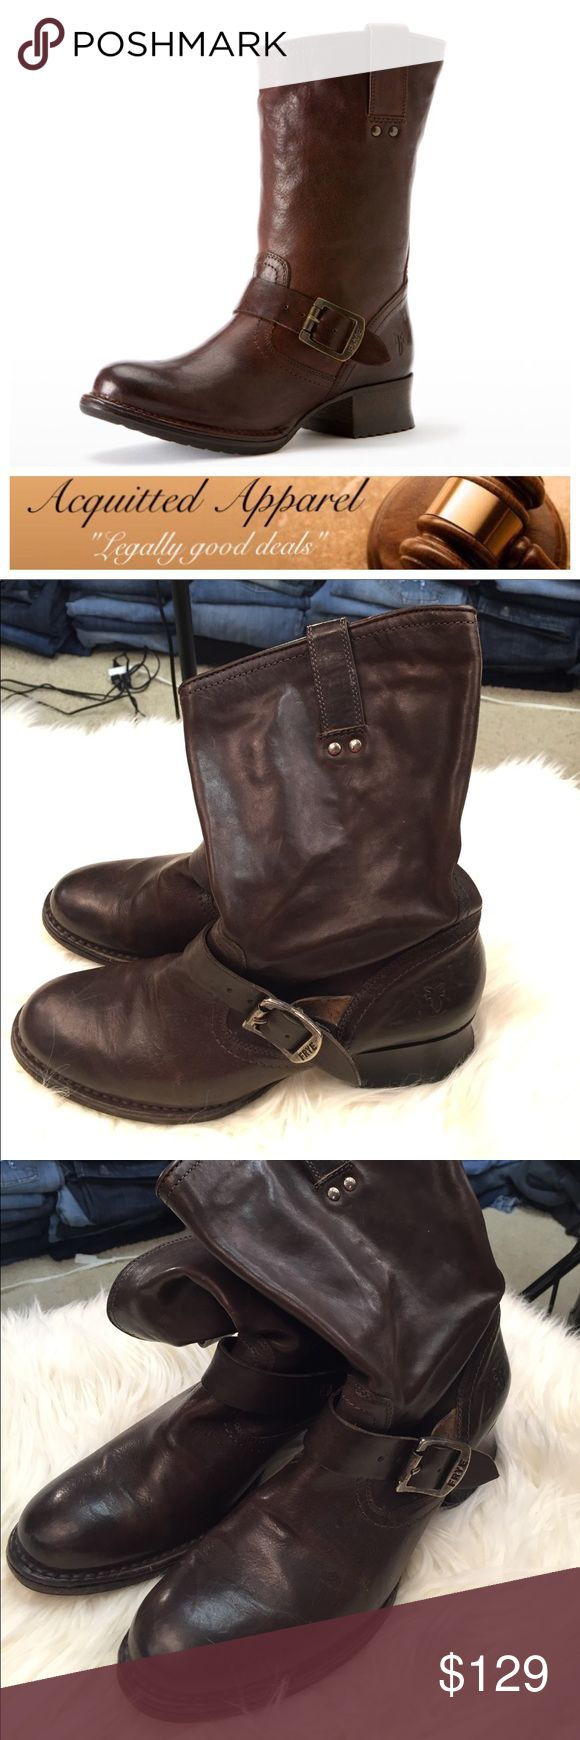 [Frye] Martina Engineer Short Leather Boots Excellent pre loved condition. The leather is still soft and in great condition. A few minor marks as photographed. Bottoms are excellent and show no real signs of wear. Great for any time of year. Real leather. 100% authentic. Size 8.5. Frye Shoes Ankle Boots & Booties